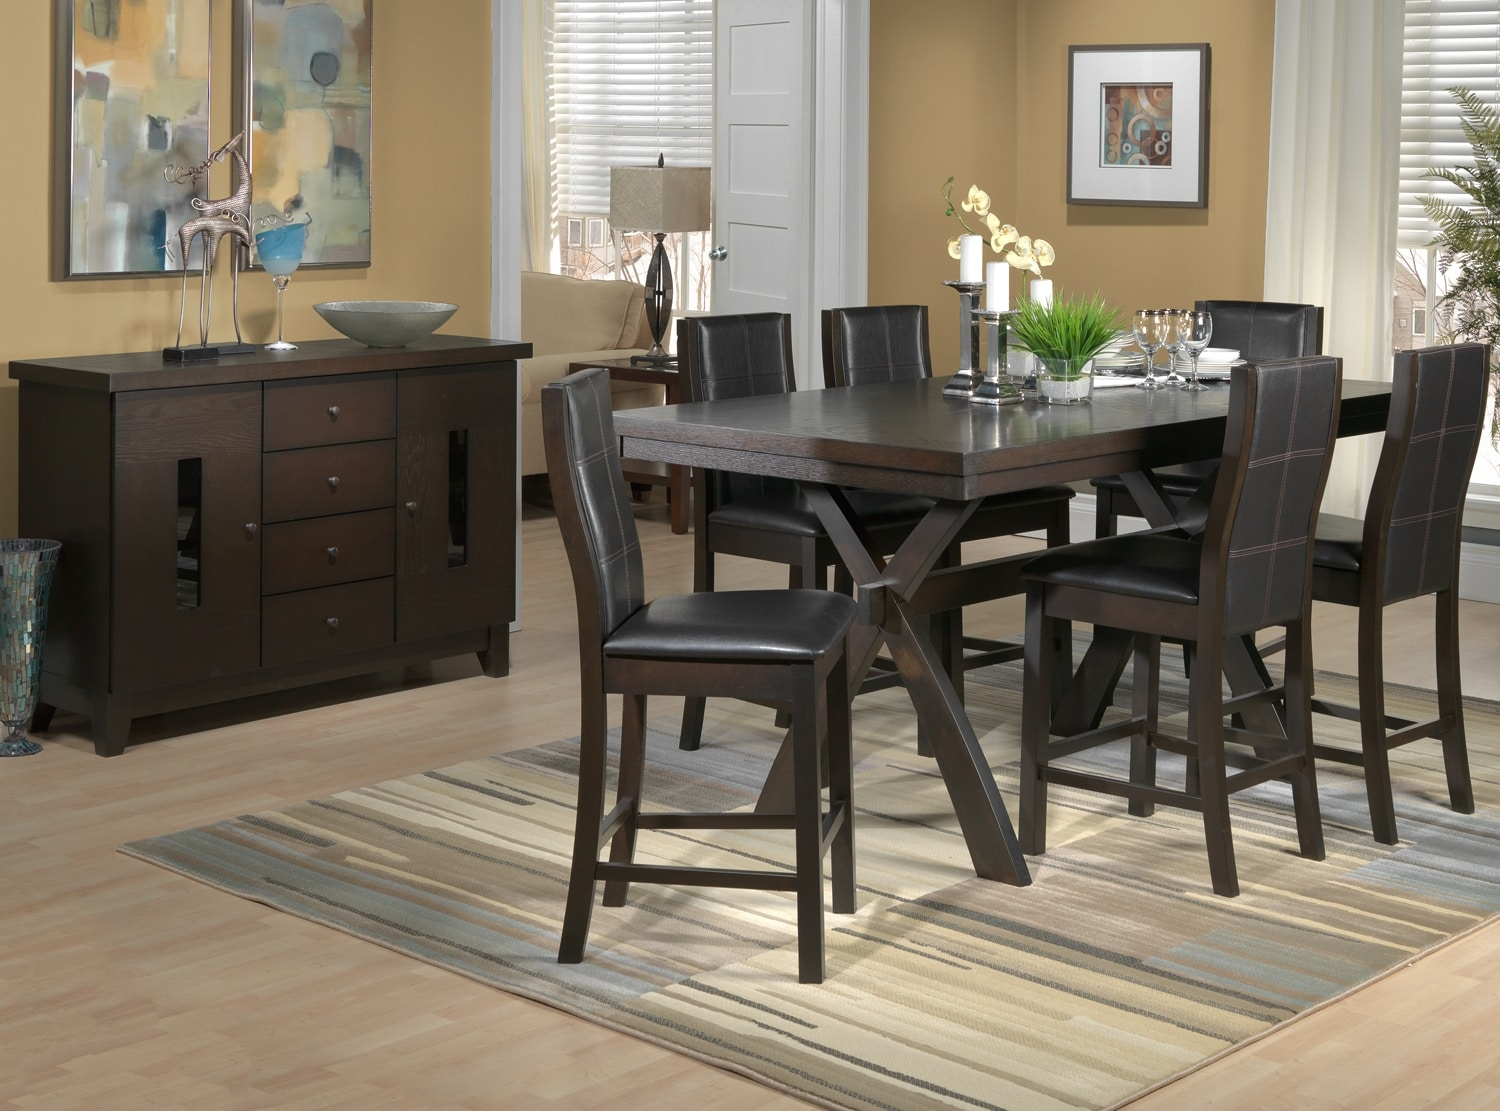 Grethell 8 Pc. Dining Room Package - Pub Height